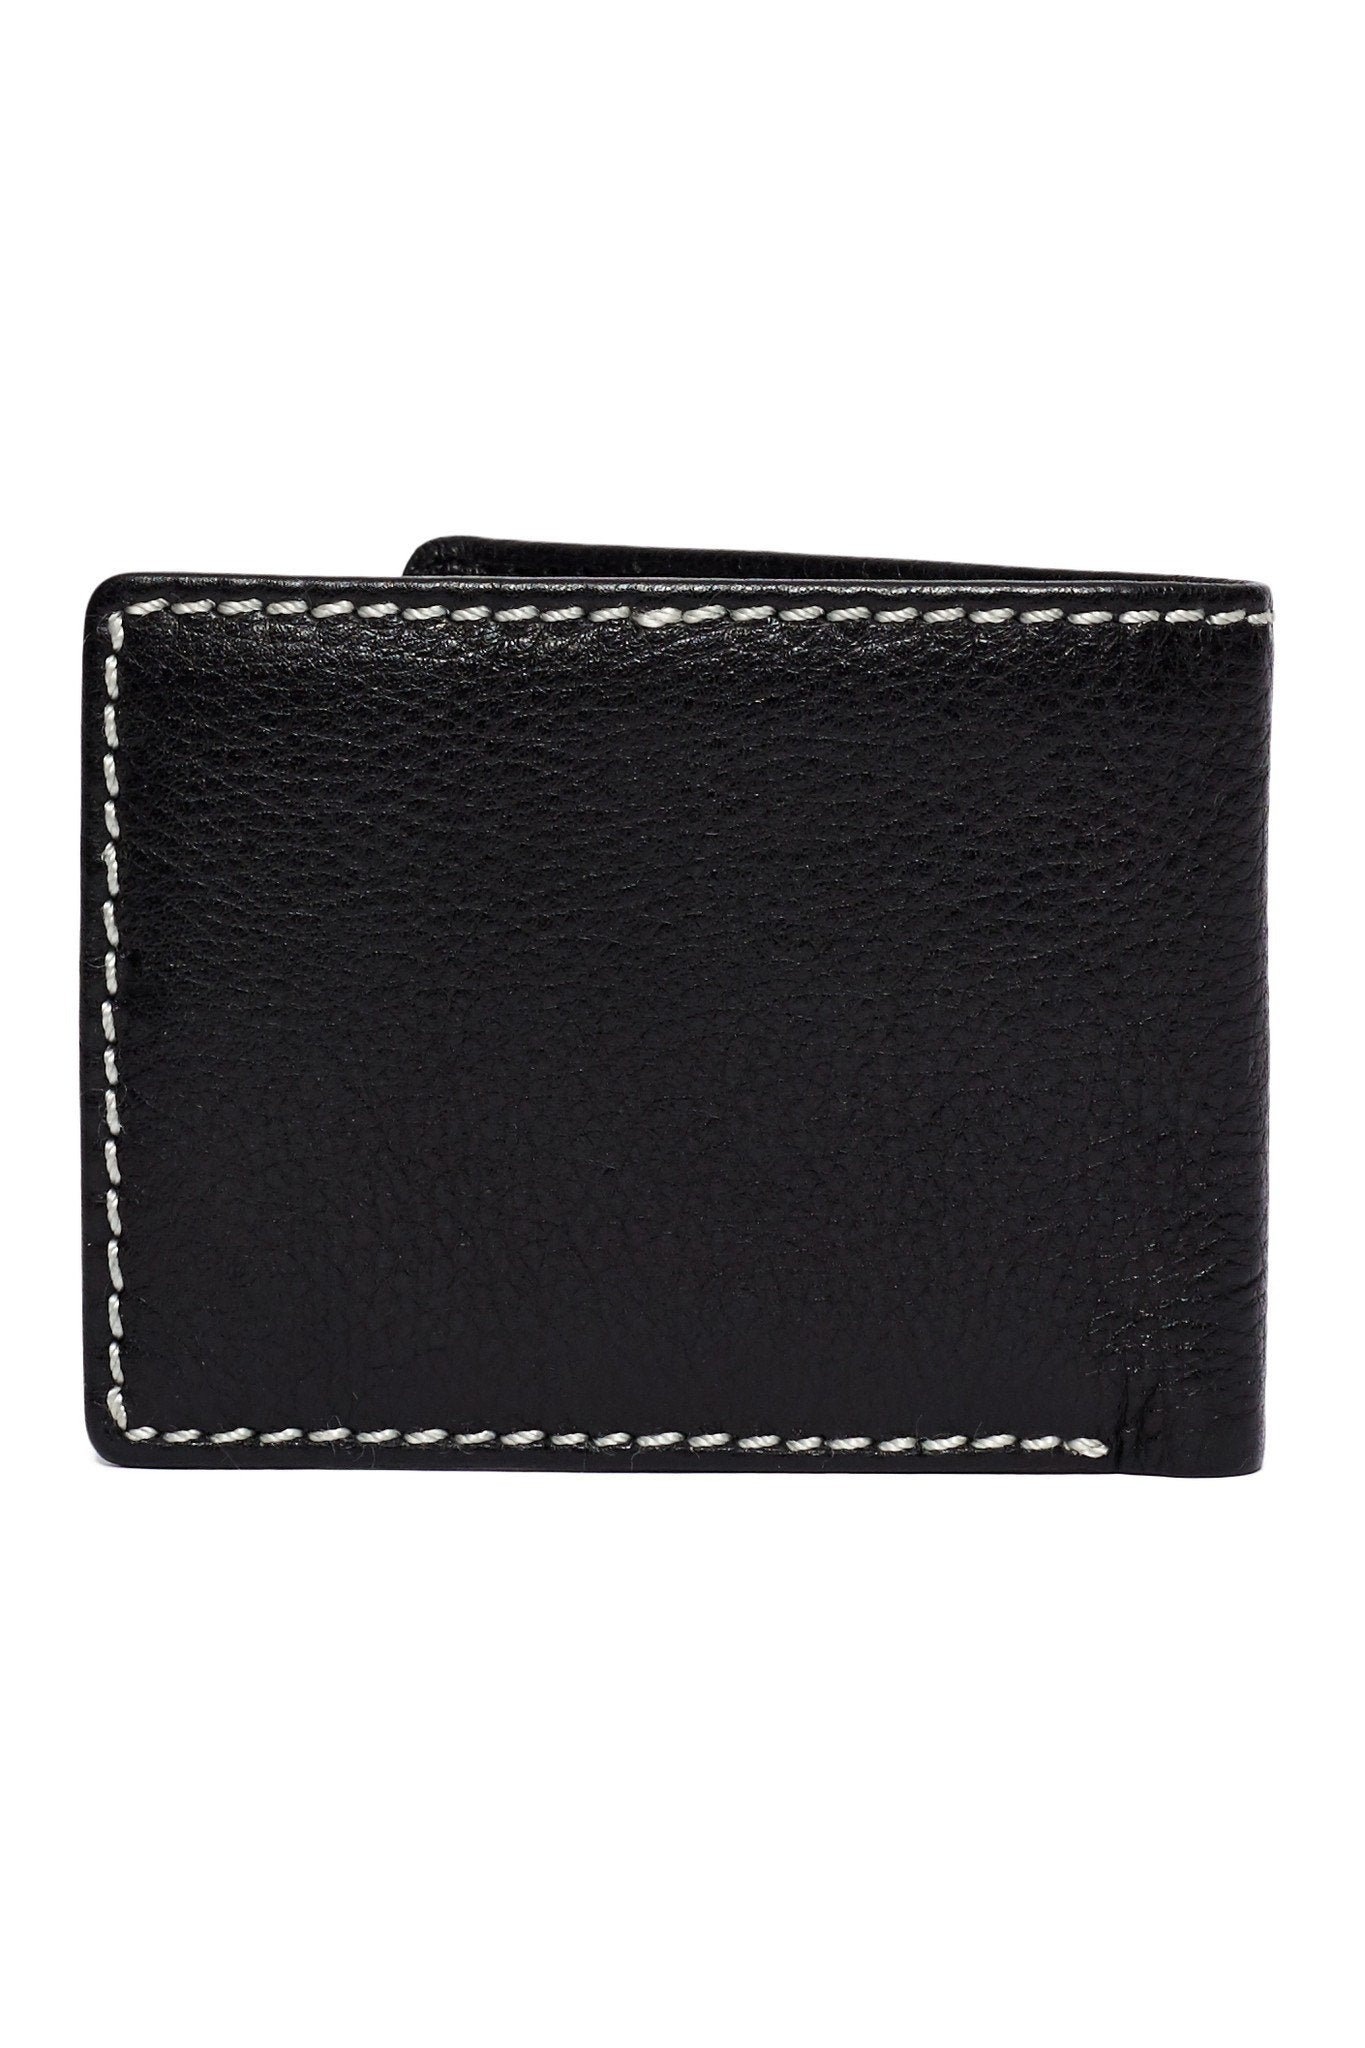 Wallet - Hayes Leather Wallet